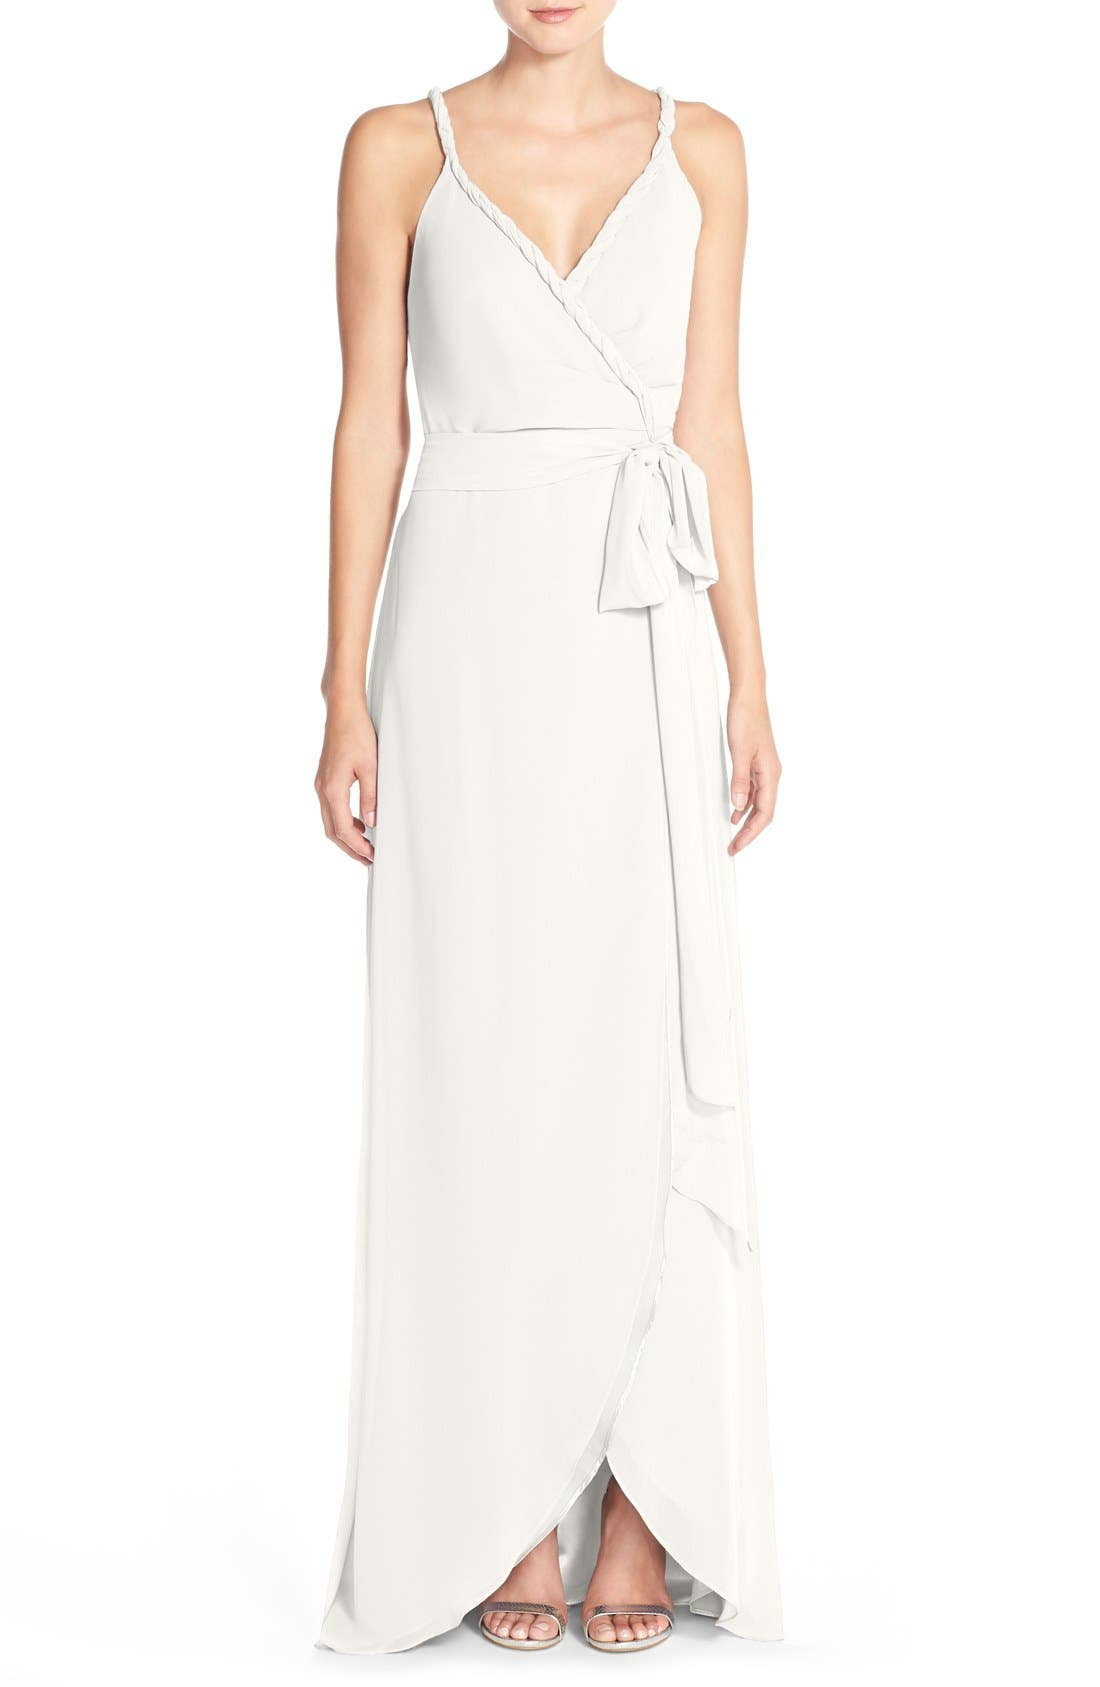 Main Image - Ceremony by Joanna August 'Parker' Twist Strap ChiffonWrap Gown